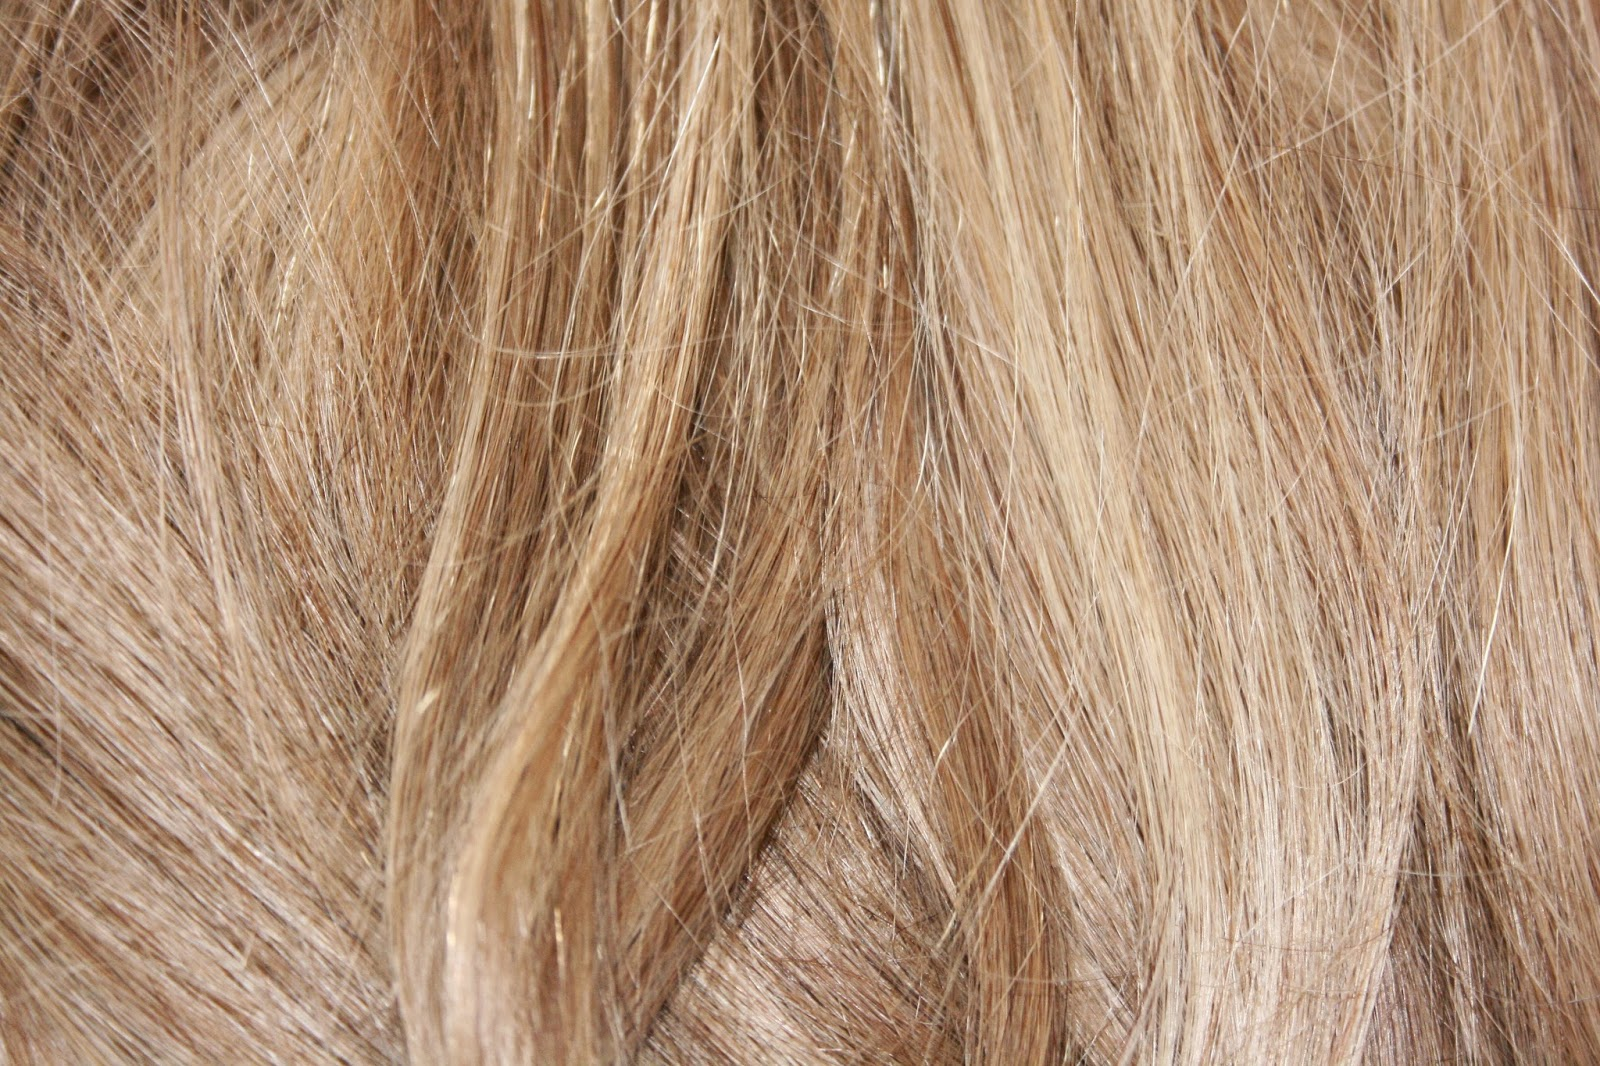 Highlights And Lowlights For Dirty Blonde Hair Dirty looks hk hair ...